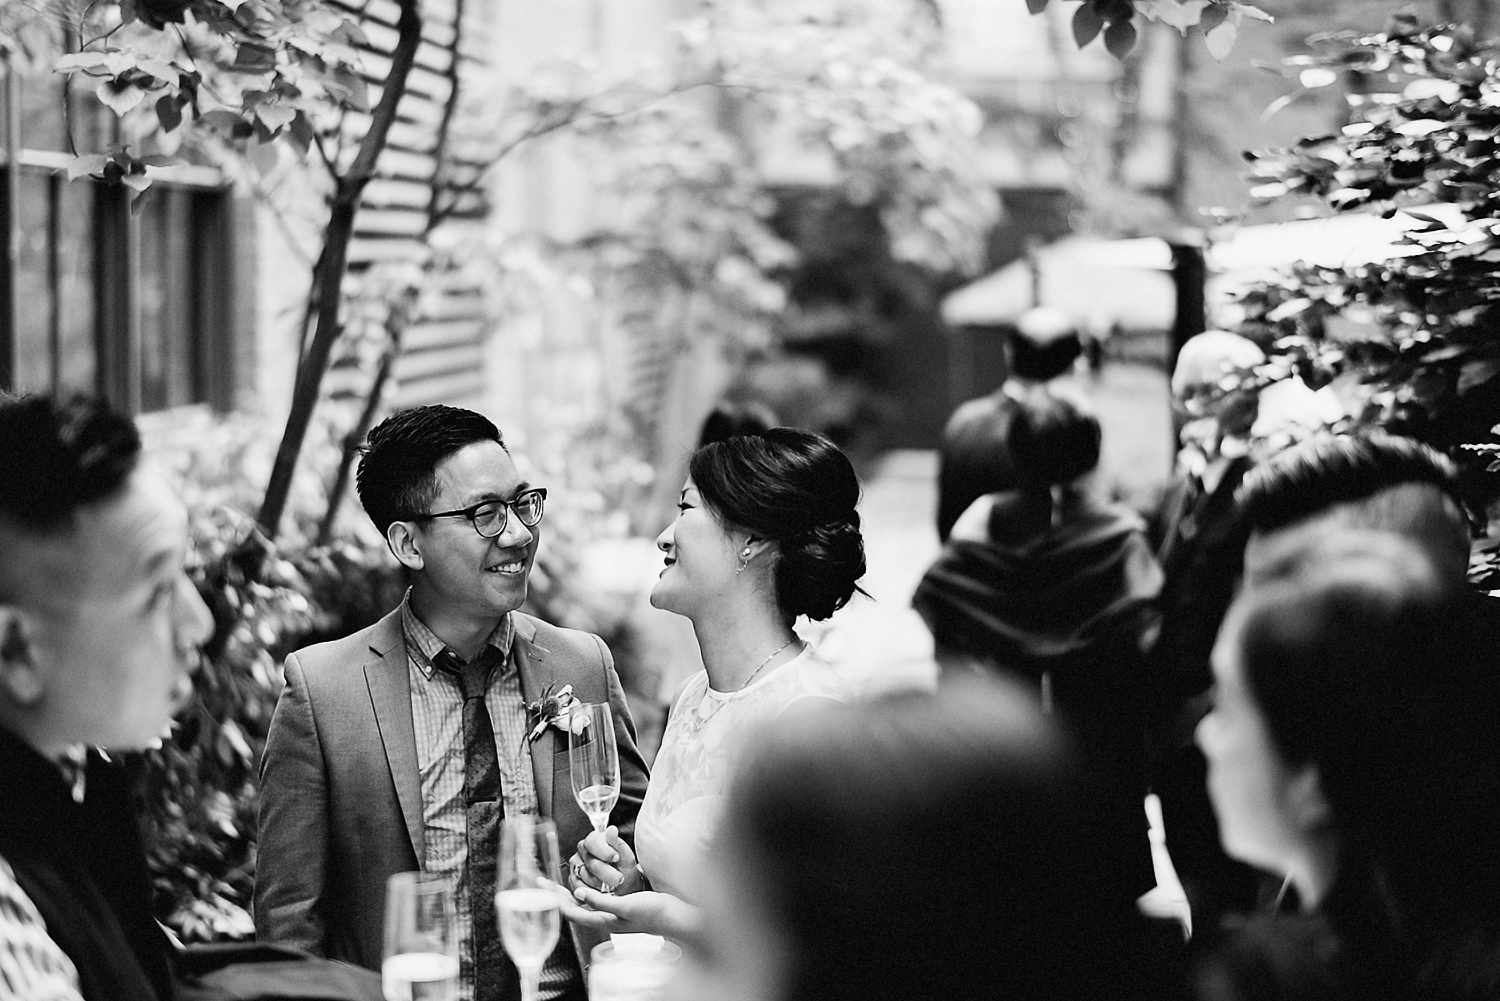 Best-Toronto-Wedding-Photographers_High-Park-Wedding_The-Lodge-Wedding_George-Restaurant-Reception_Analog-Film_Intimate-Candid-Photography_Guests-Detail_Outdoor-Summer-Wedding-Toronto_Casual-Restaurant-Wedding-Groom-and-Bride-Candid-Moment.jpg